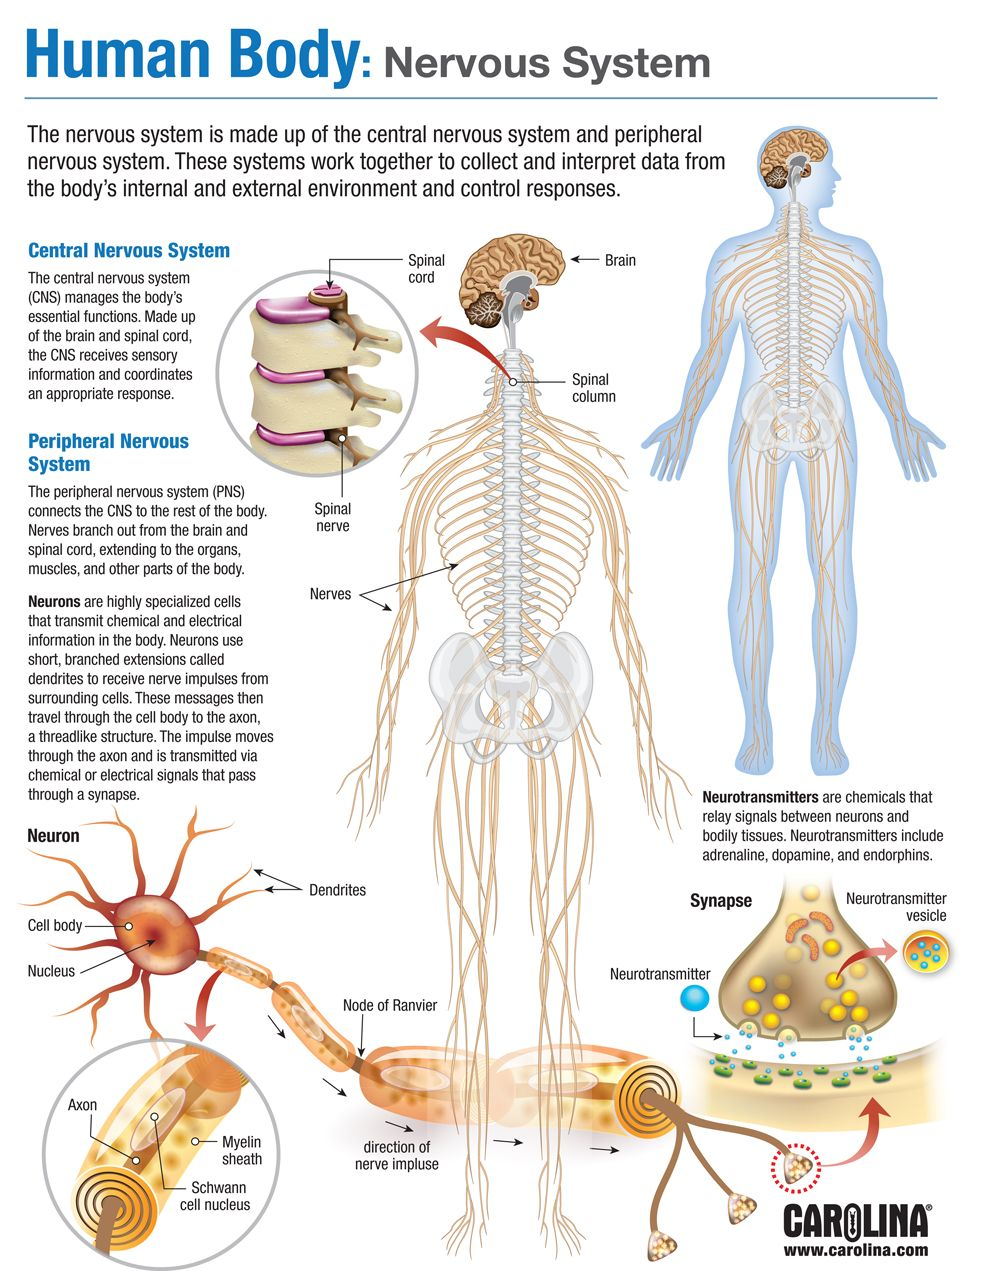 Human Body Nervous System Carolina